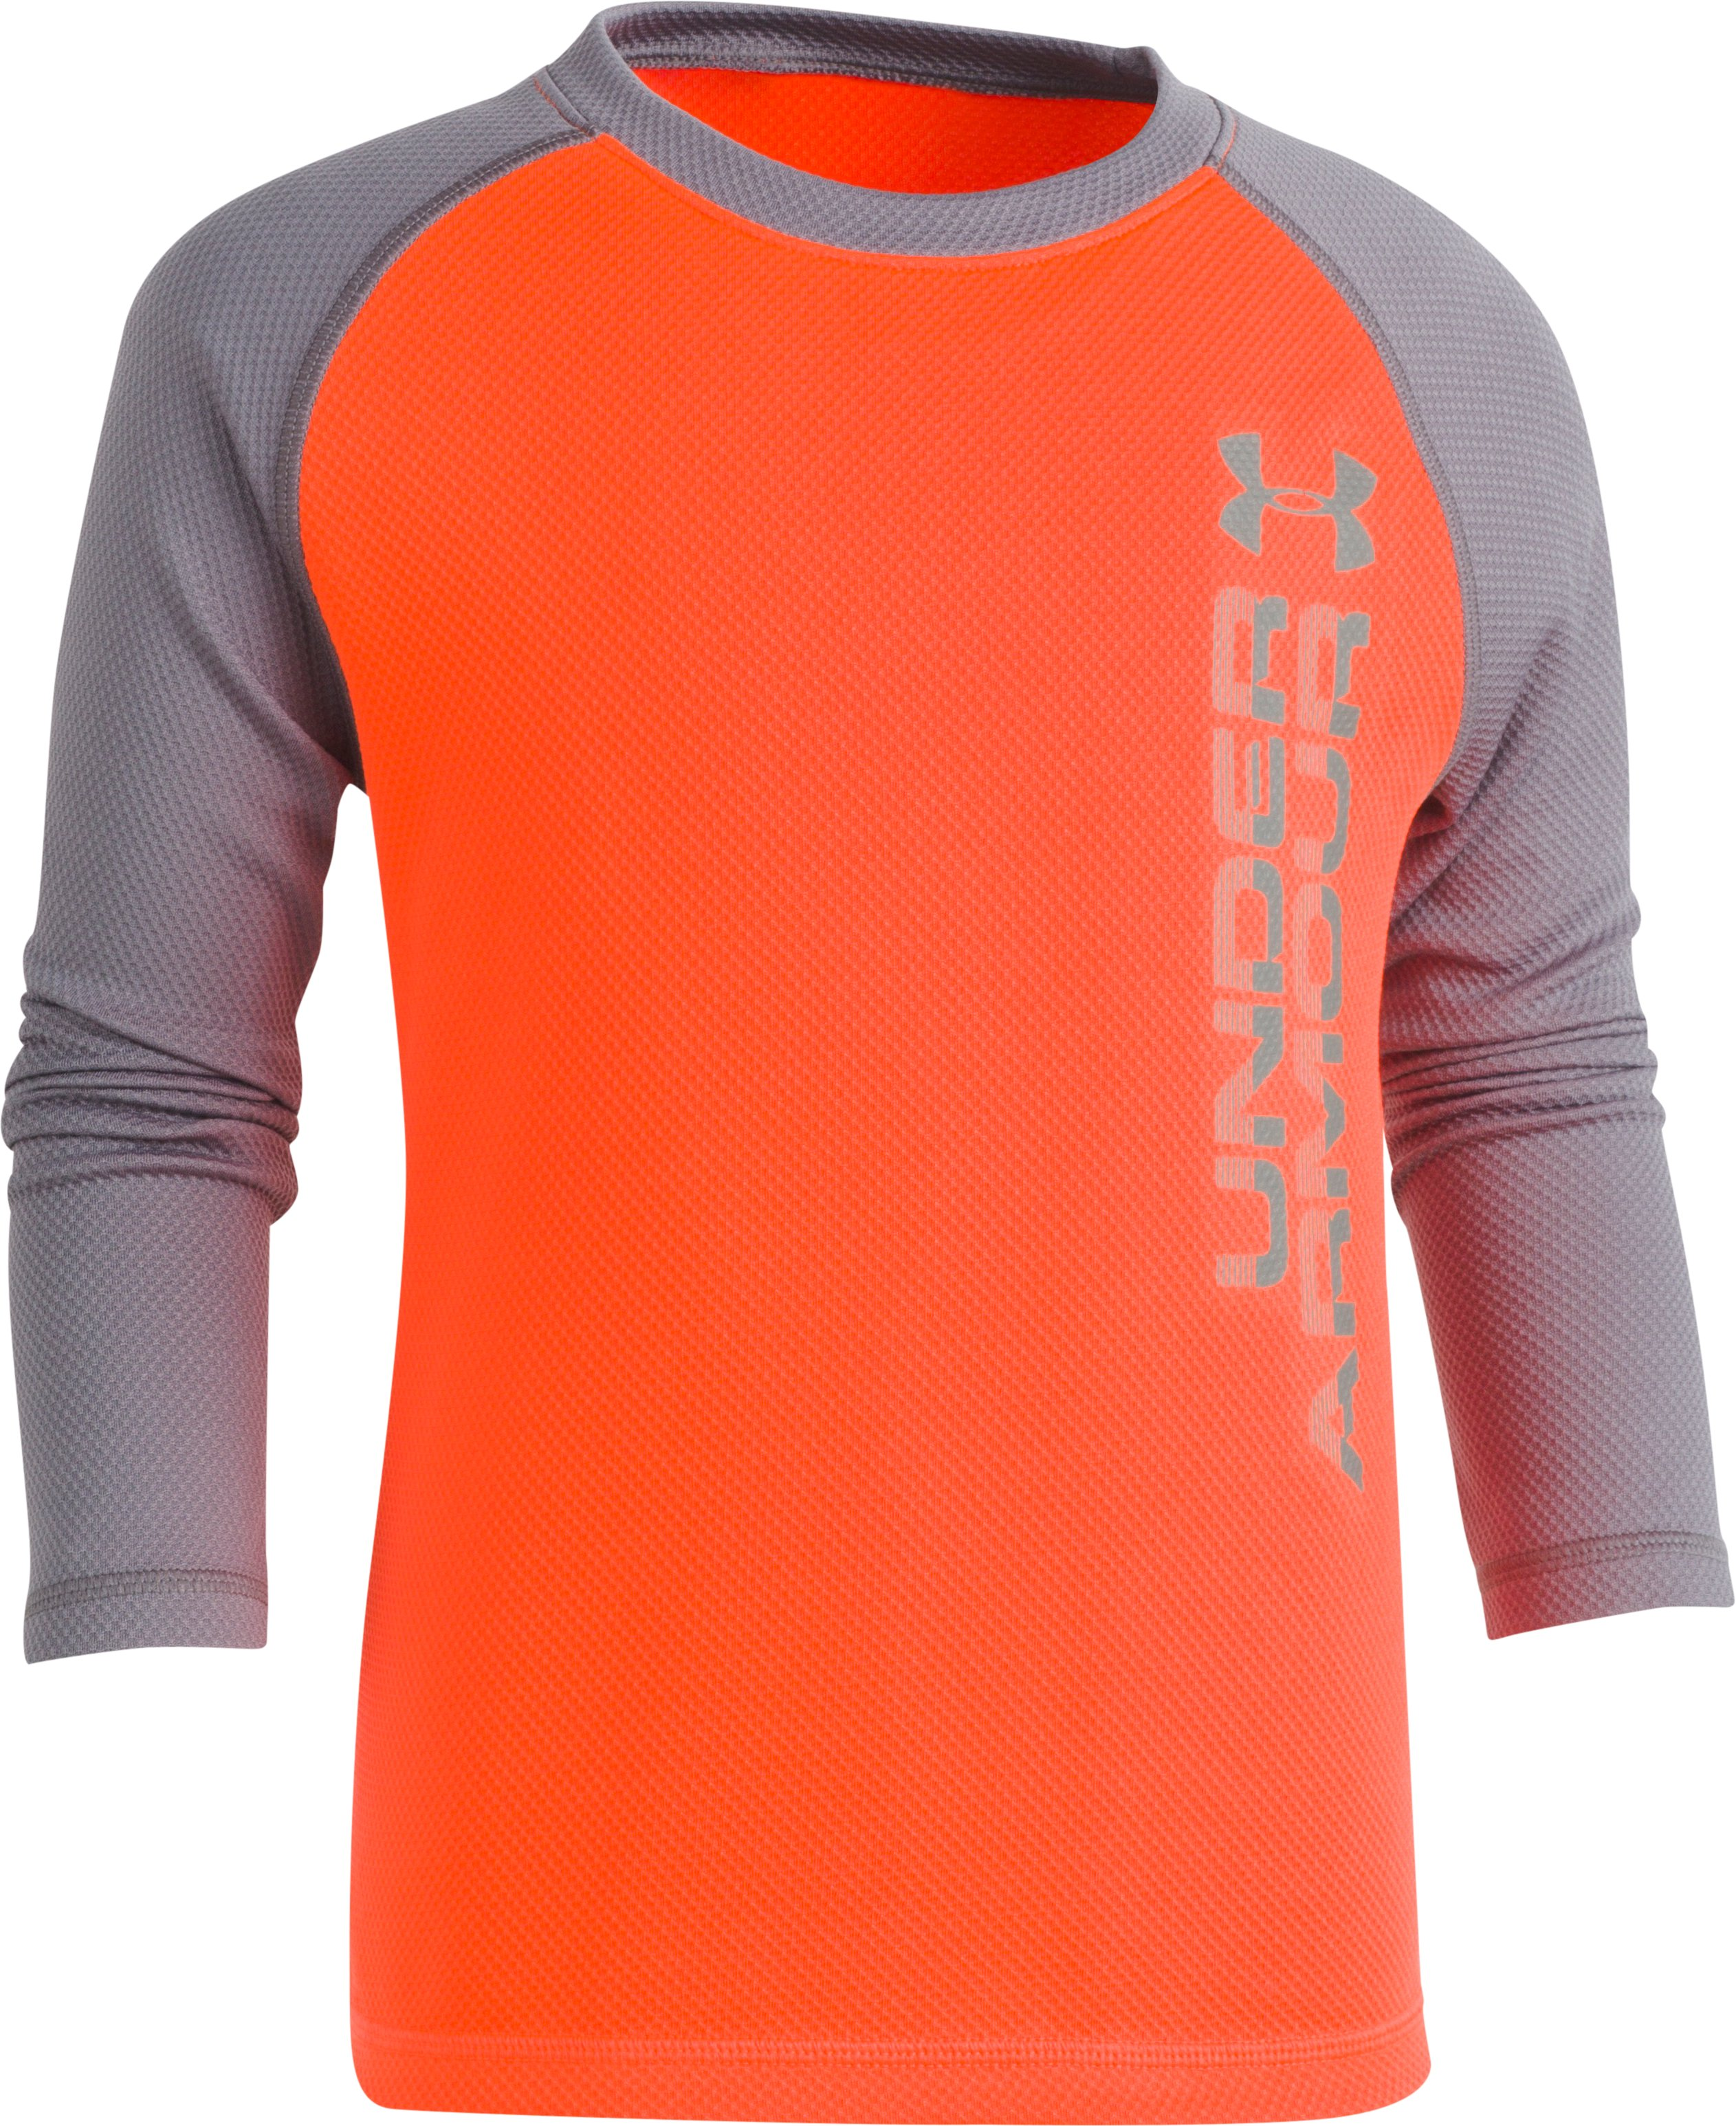 Boys' Pre-School UA Vertical Wordmark Reaper, MAGMA ORANGE